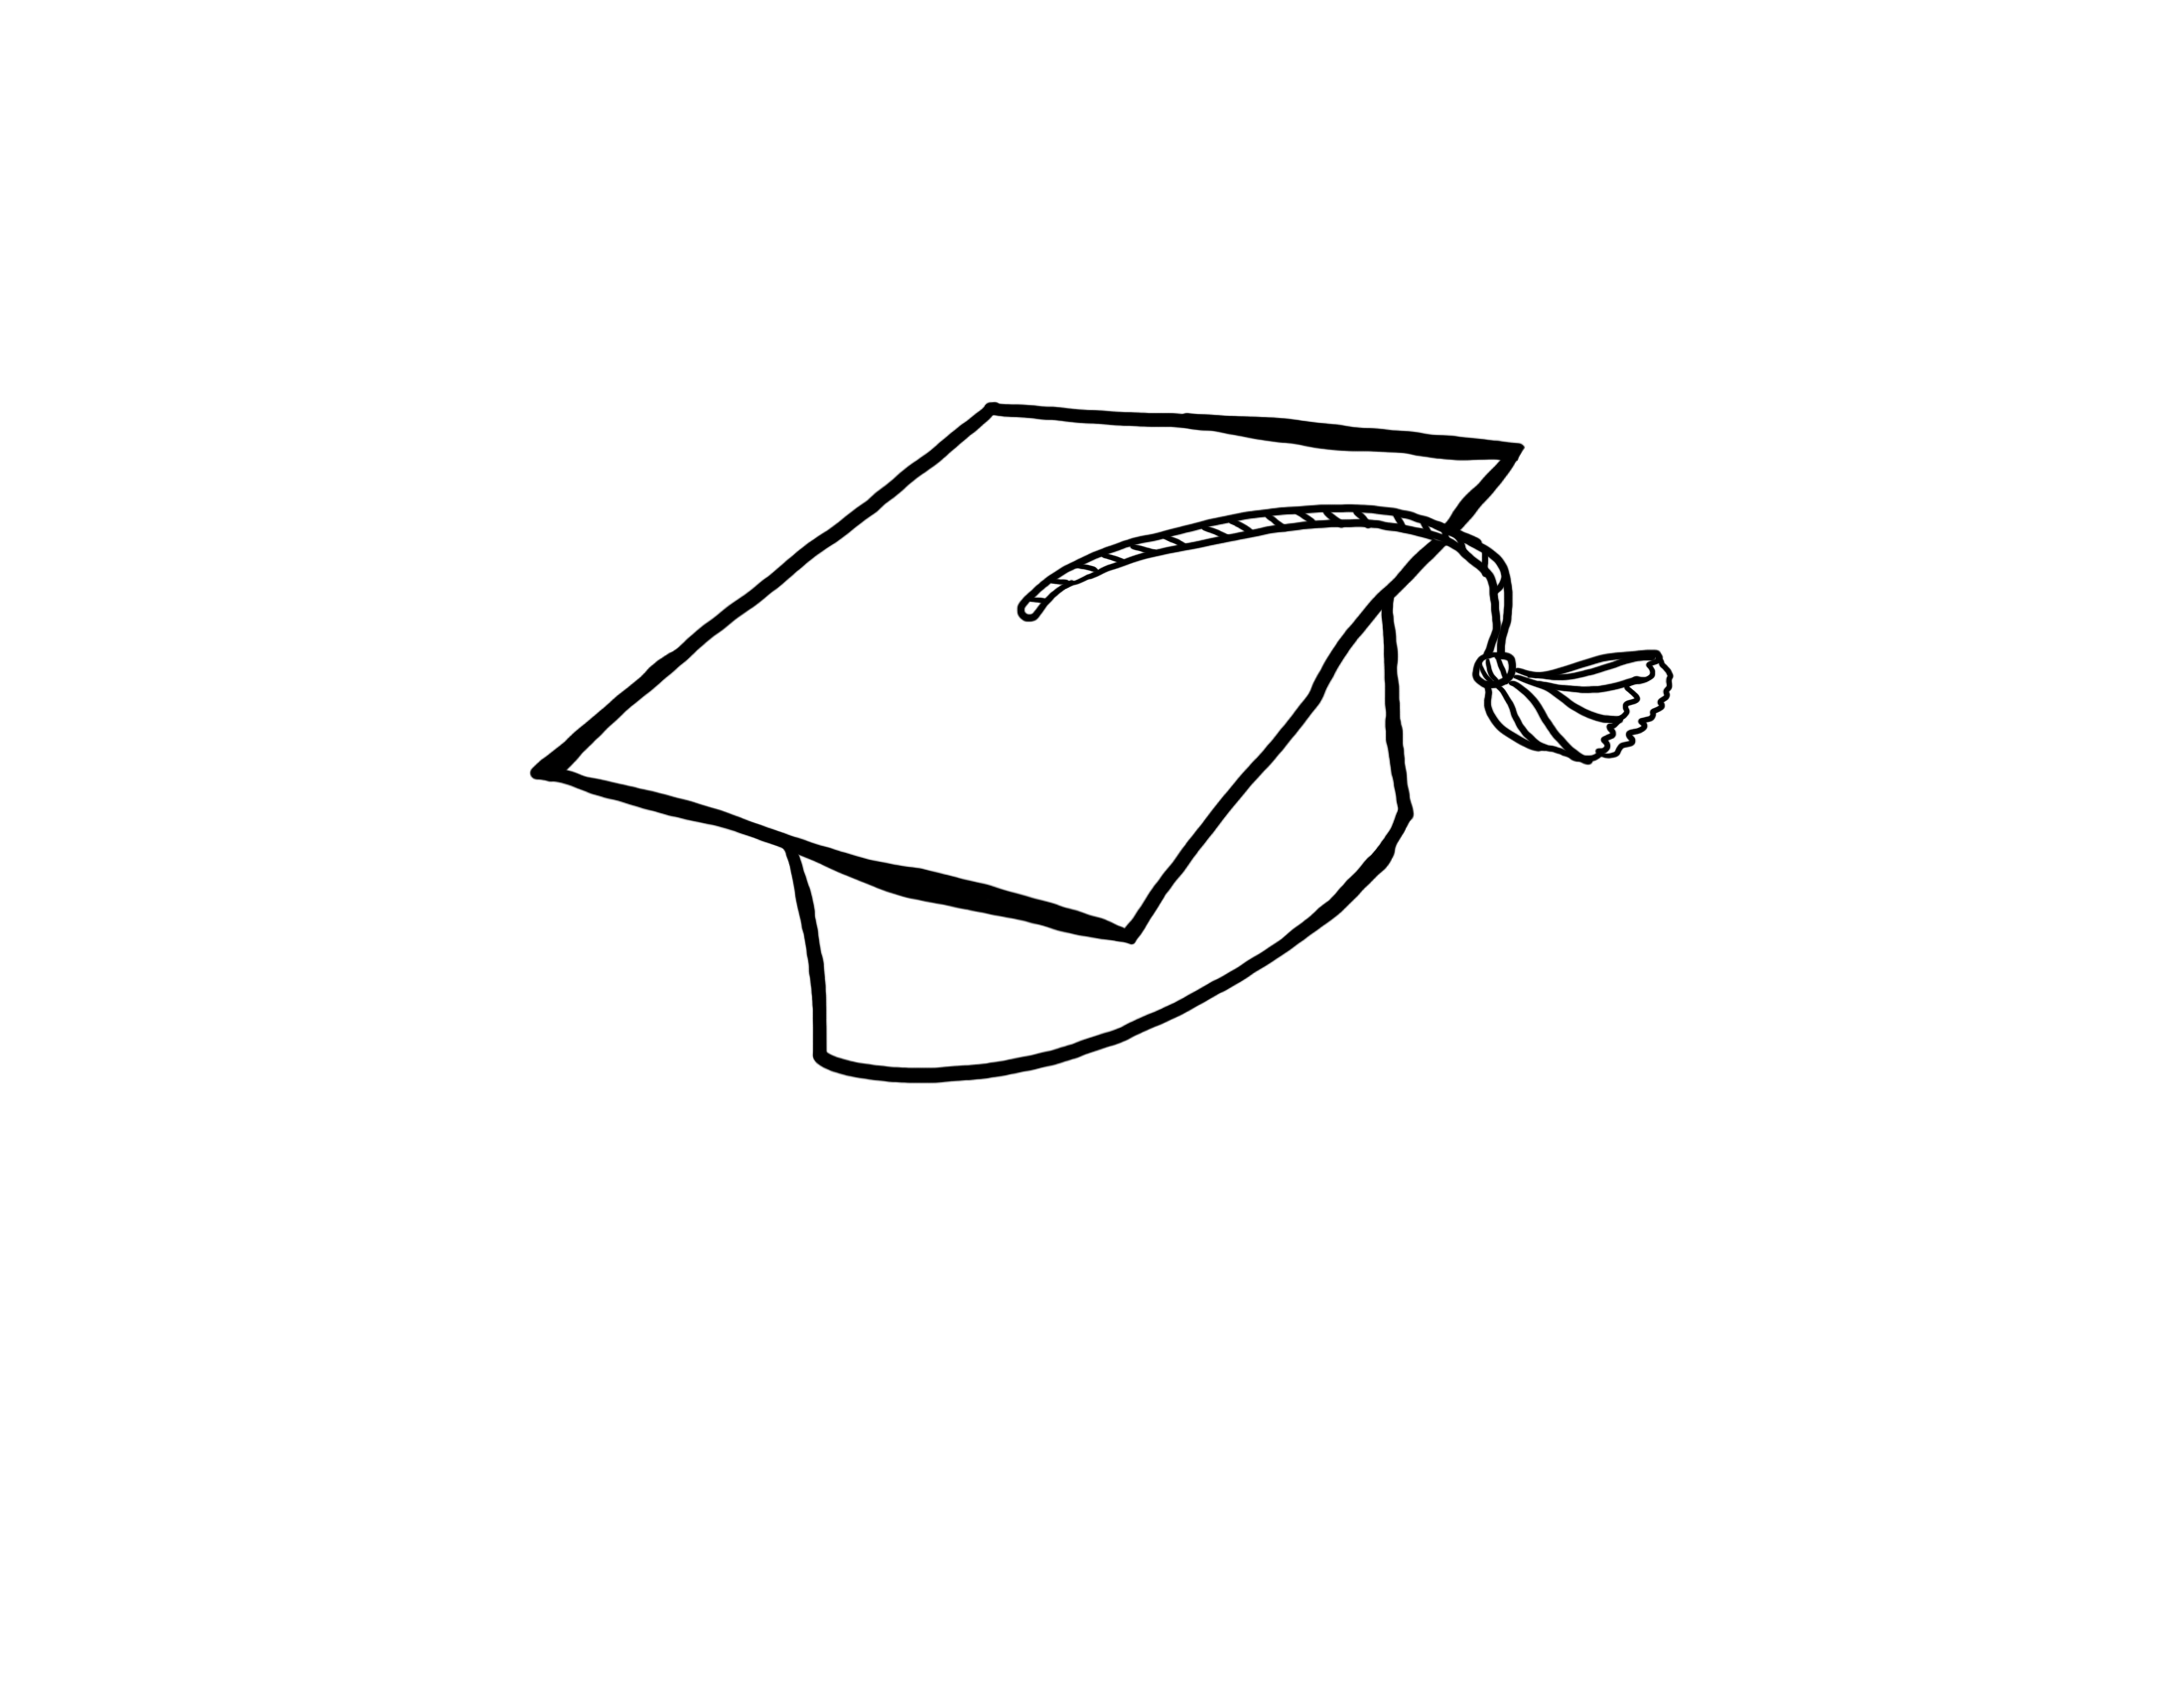 Grad cap png doodle. Graduation drawings free download